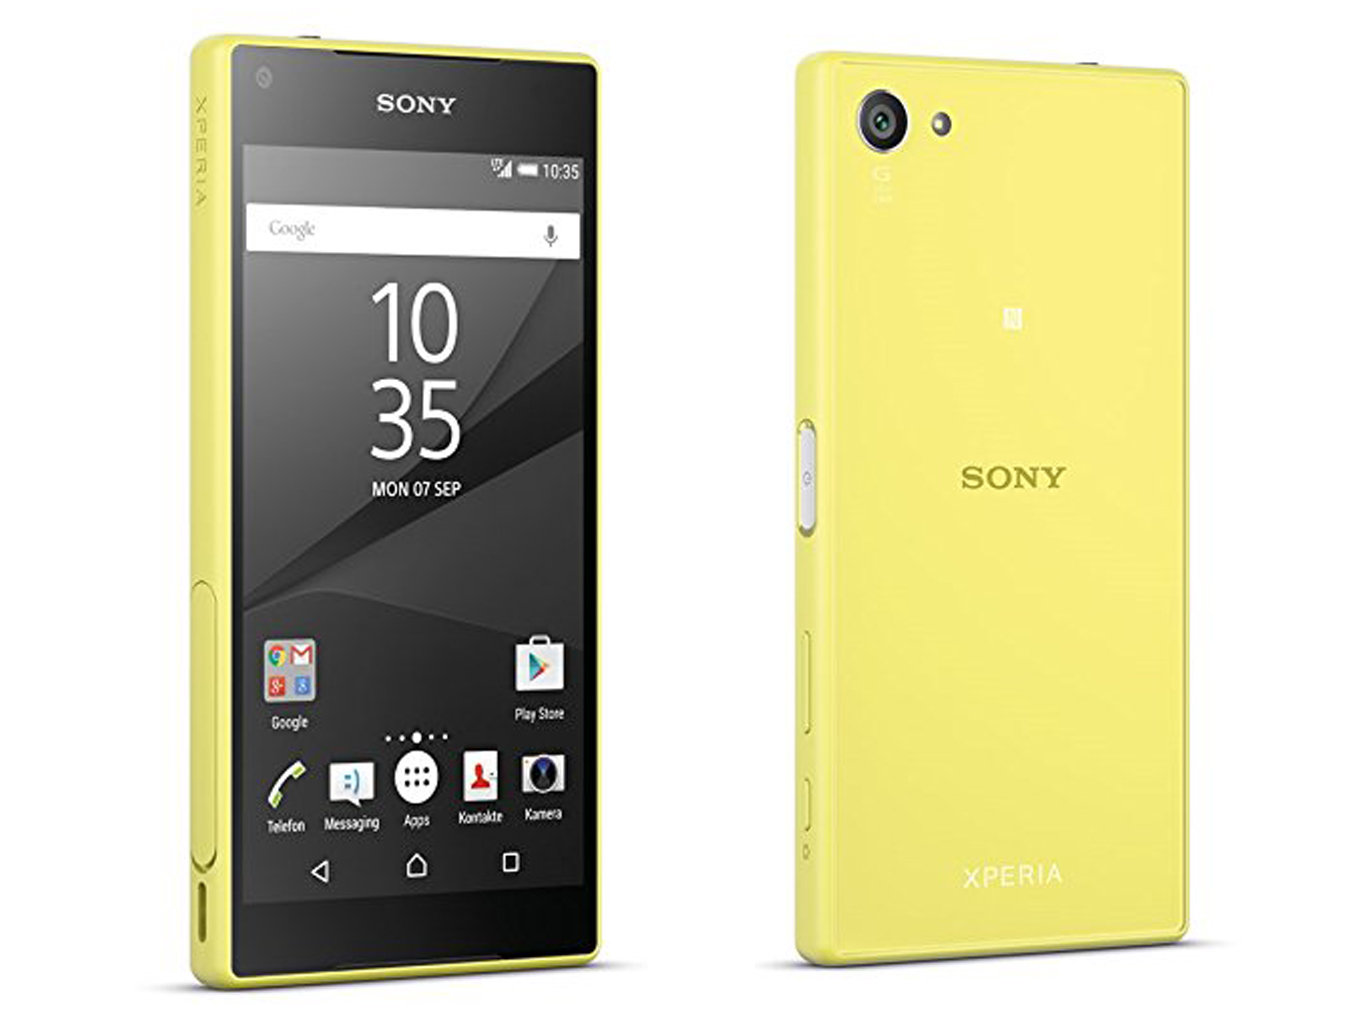 kort testrapport sony xperia z5 compact smartphone. Black Bedroom Furniture Sets. Home Design Ideas